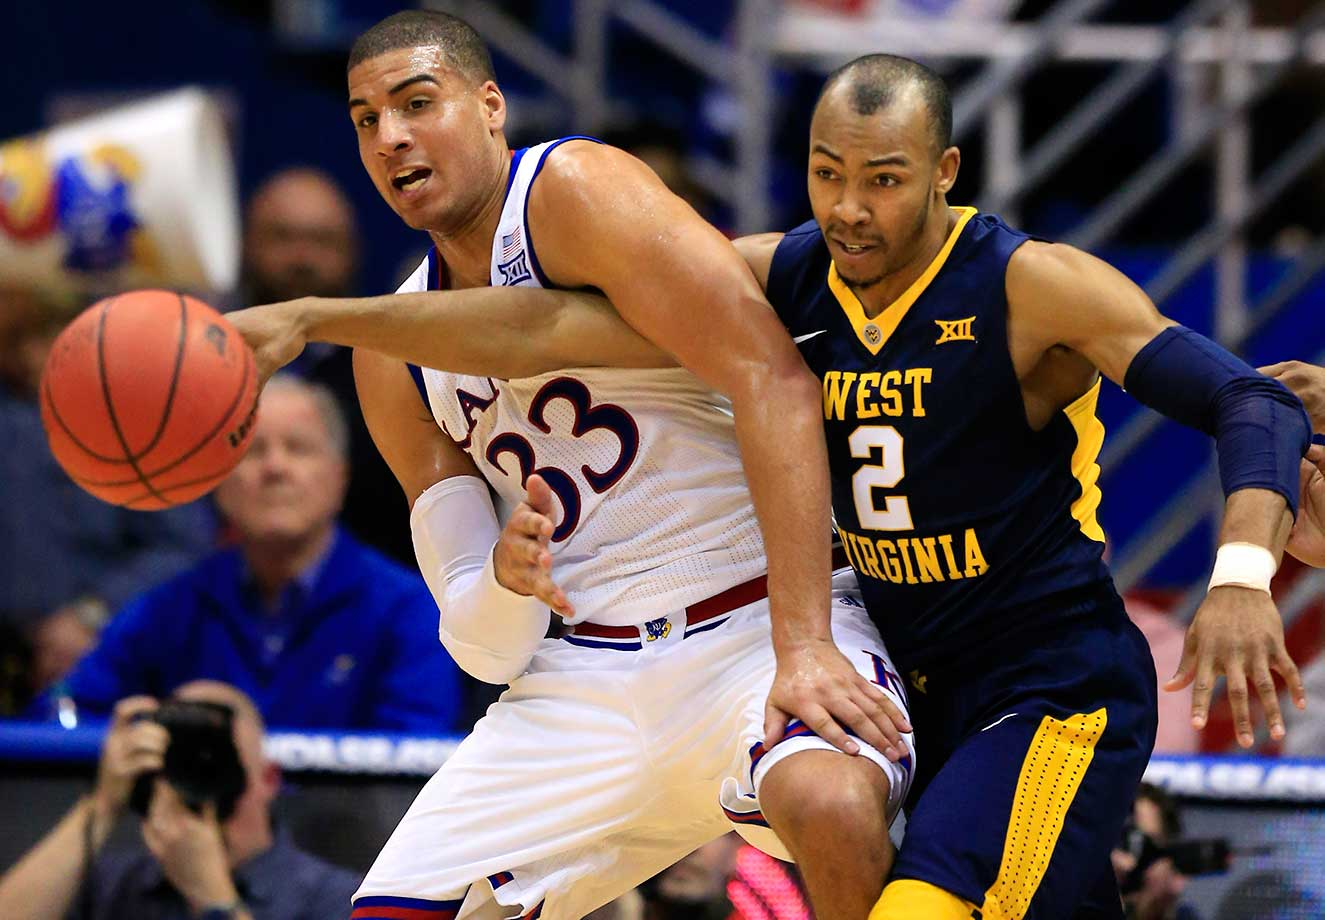 West Virginia guard Jevon Carter reaches in on Kansas forward Landen Lucas.